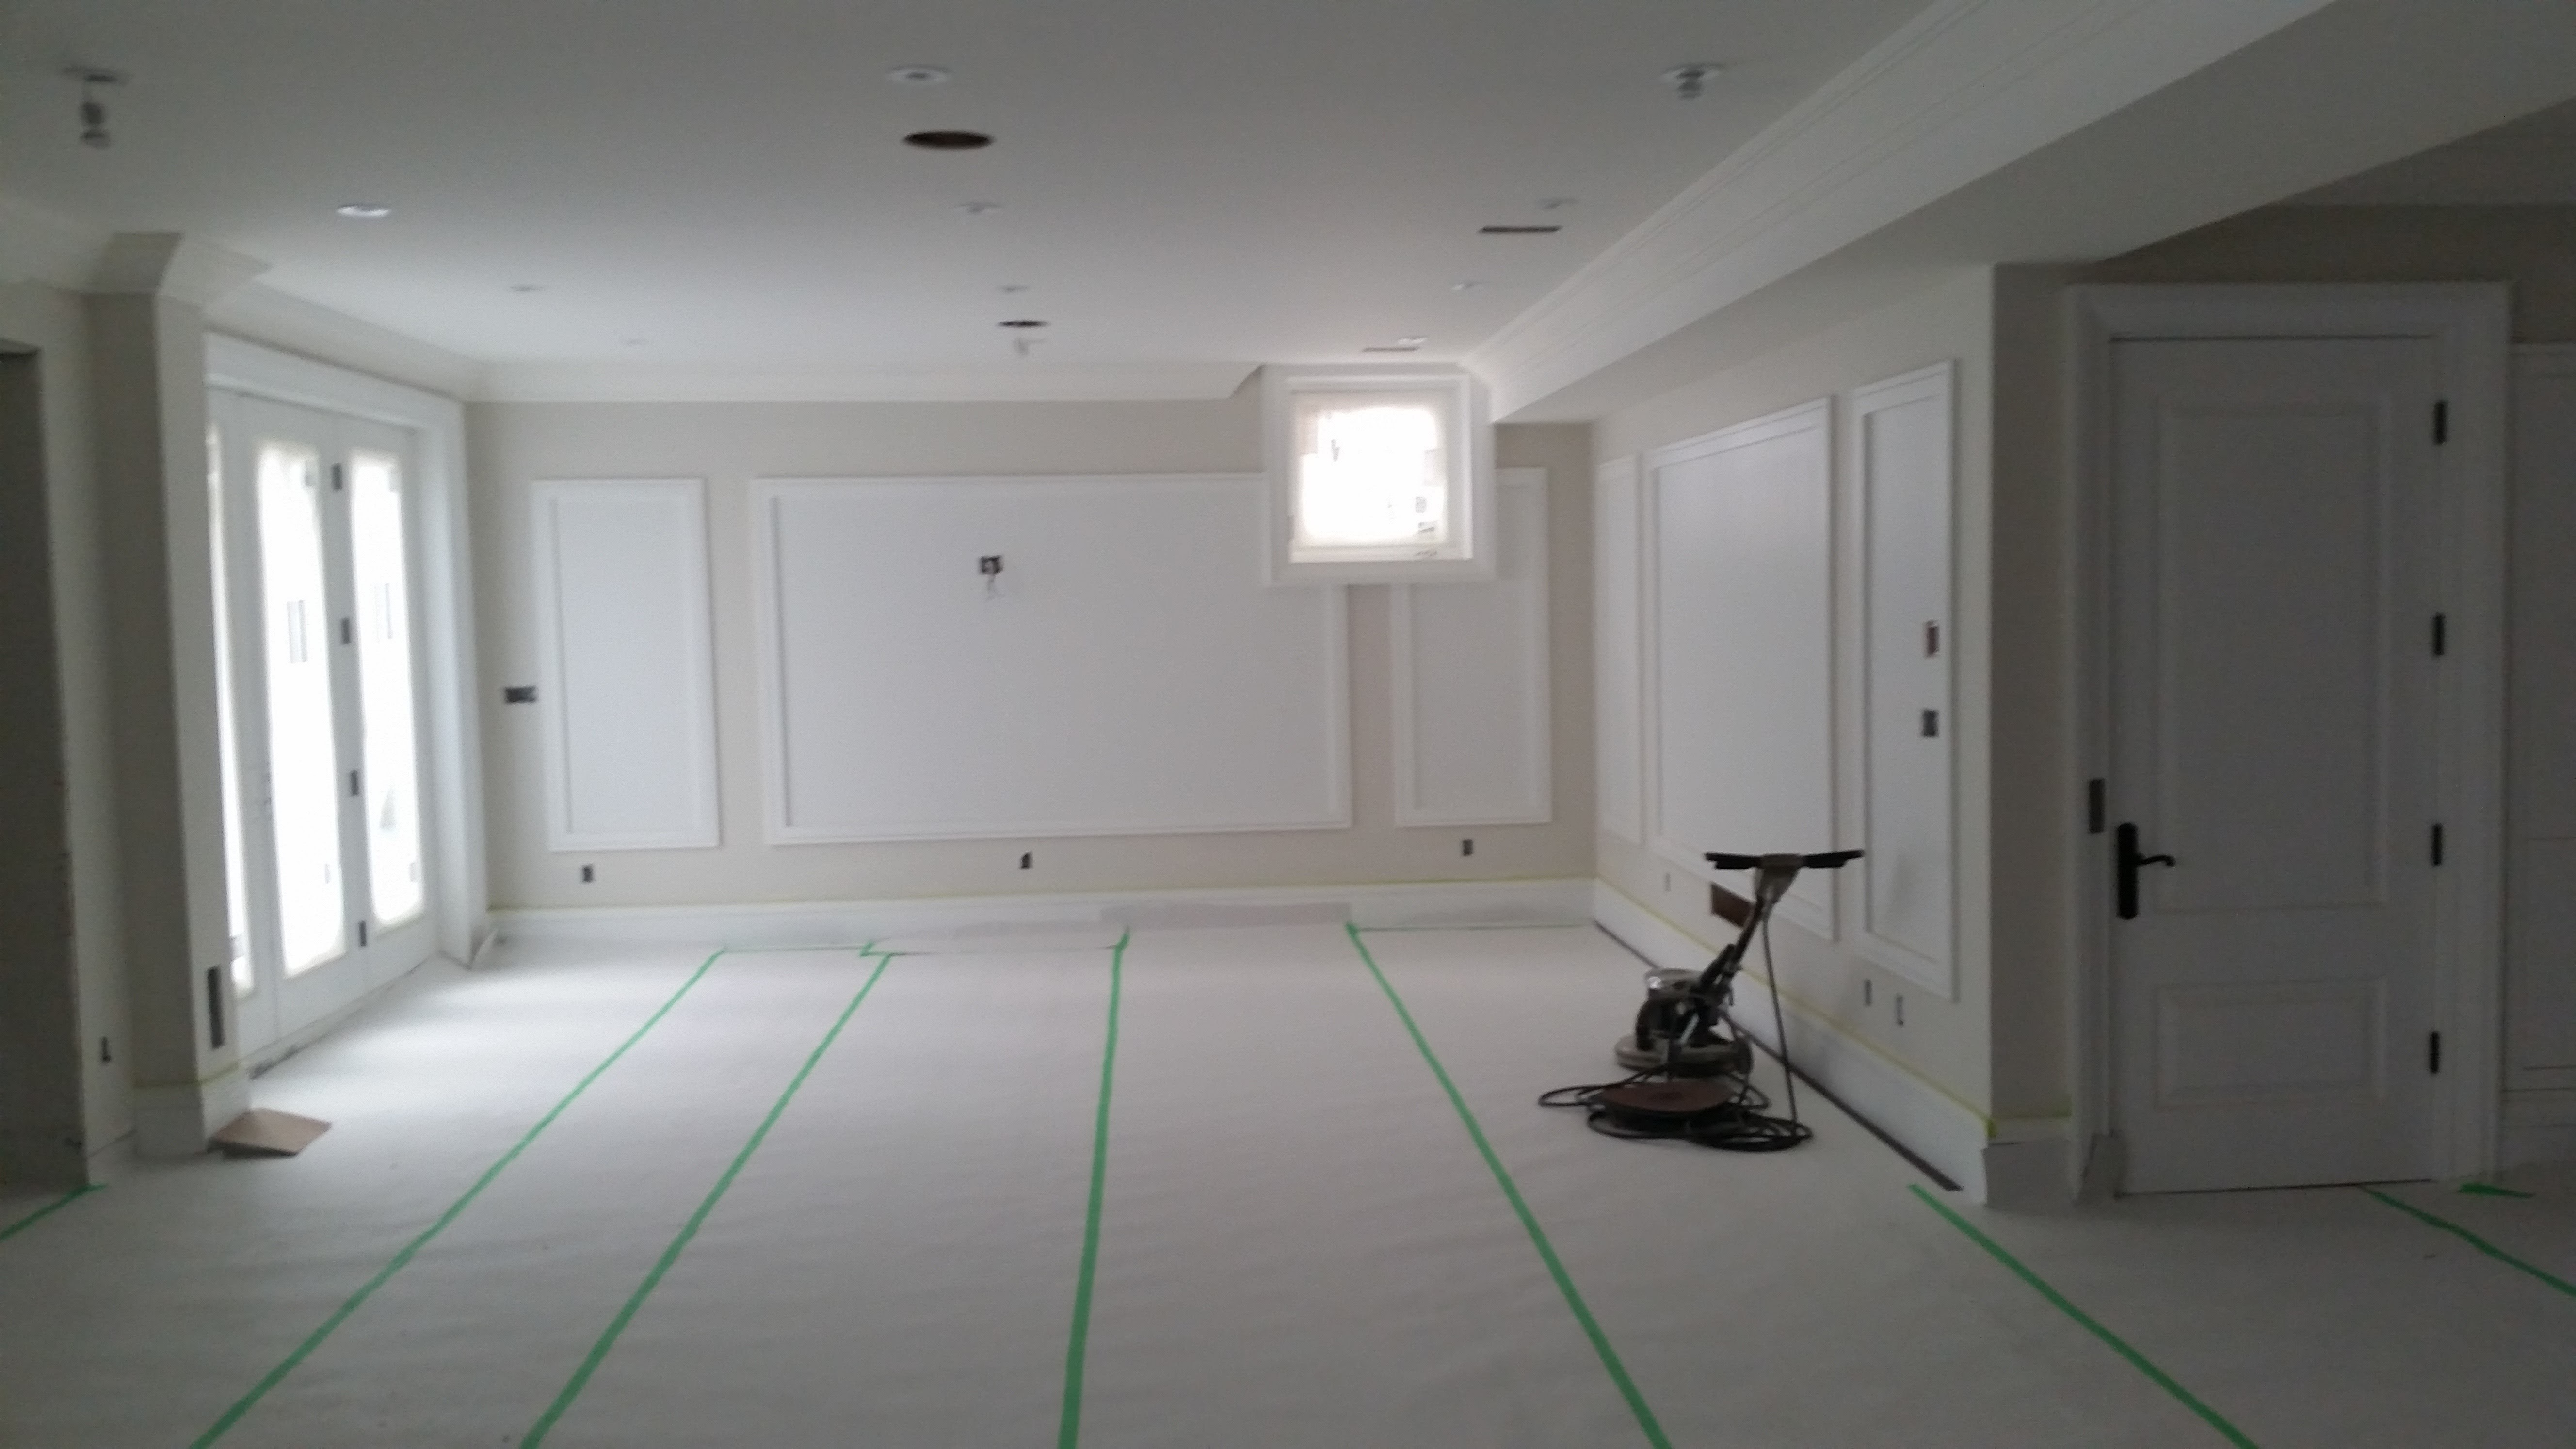 Toronto Drywall Taping Amp Drywall Finishing Level 5 Finish